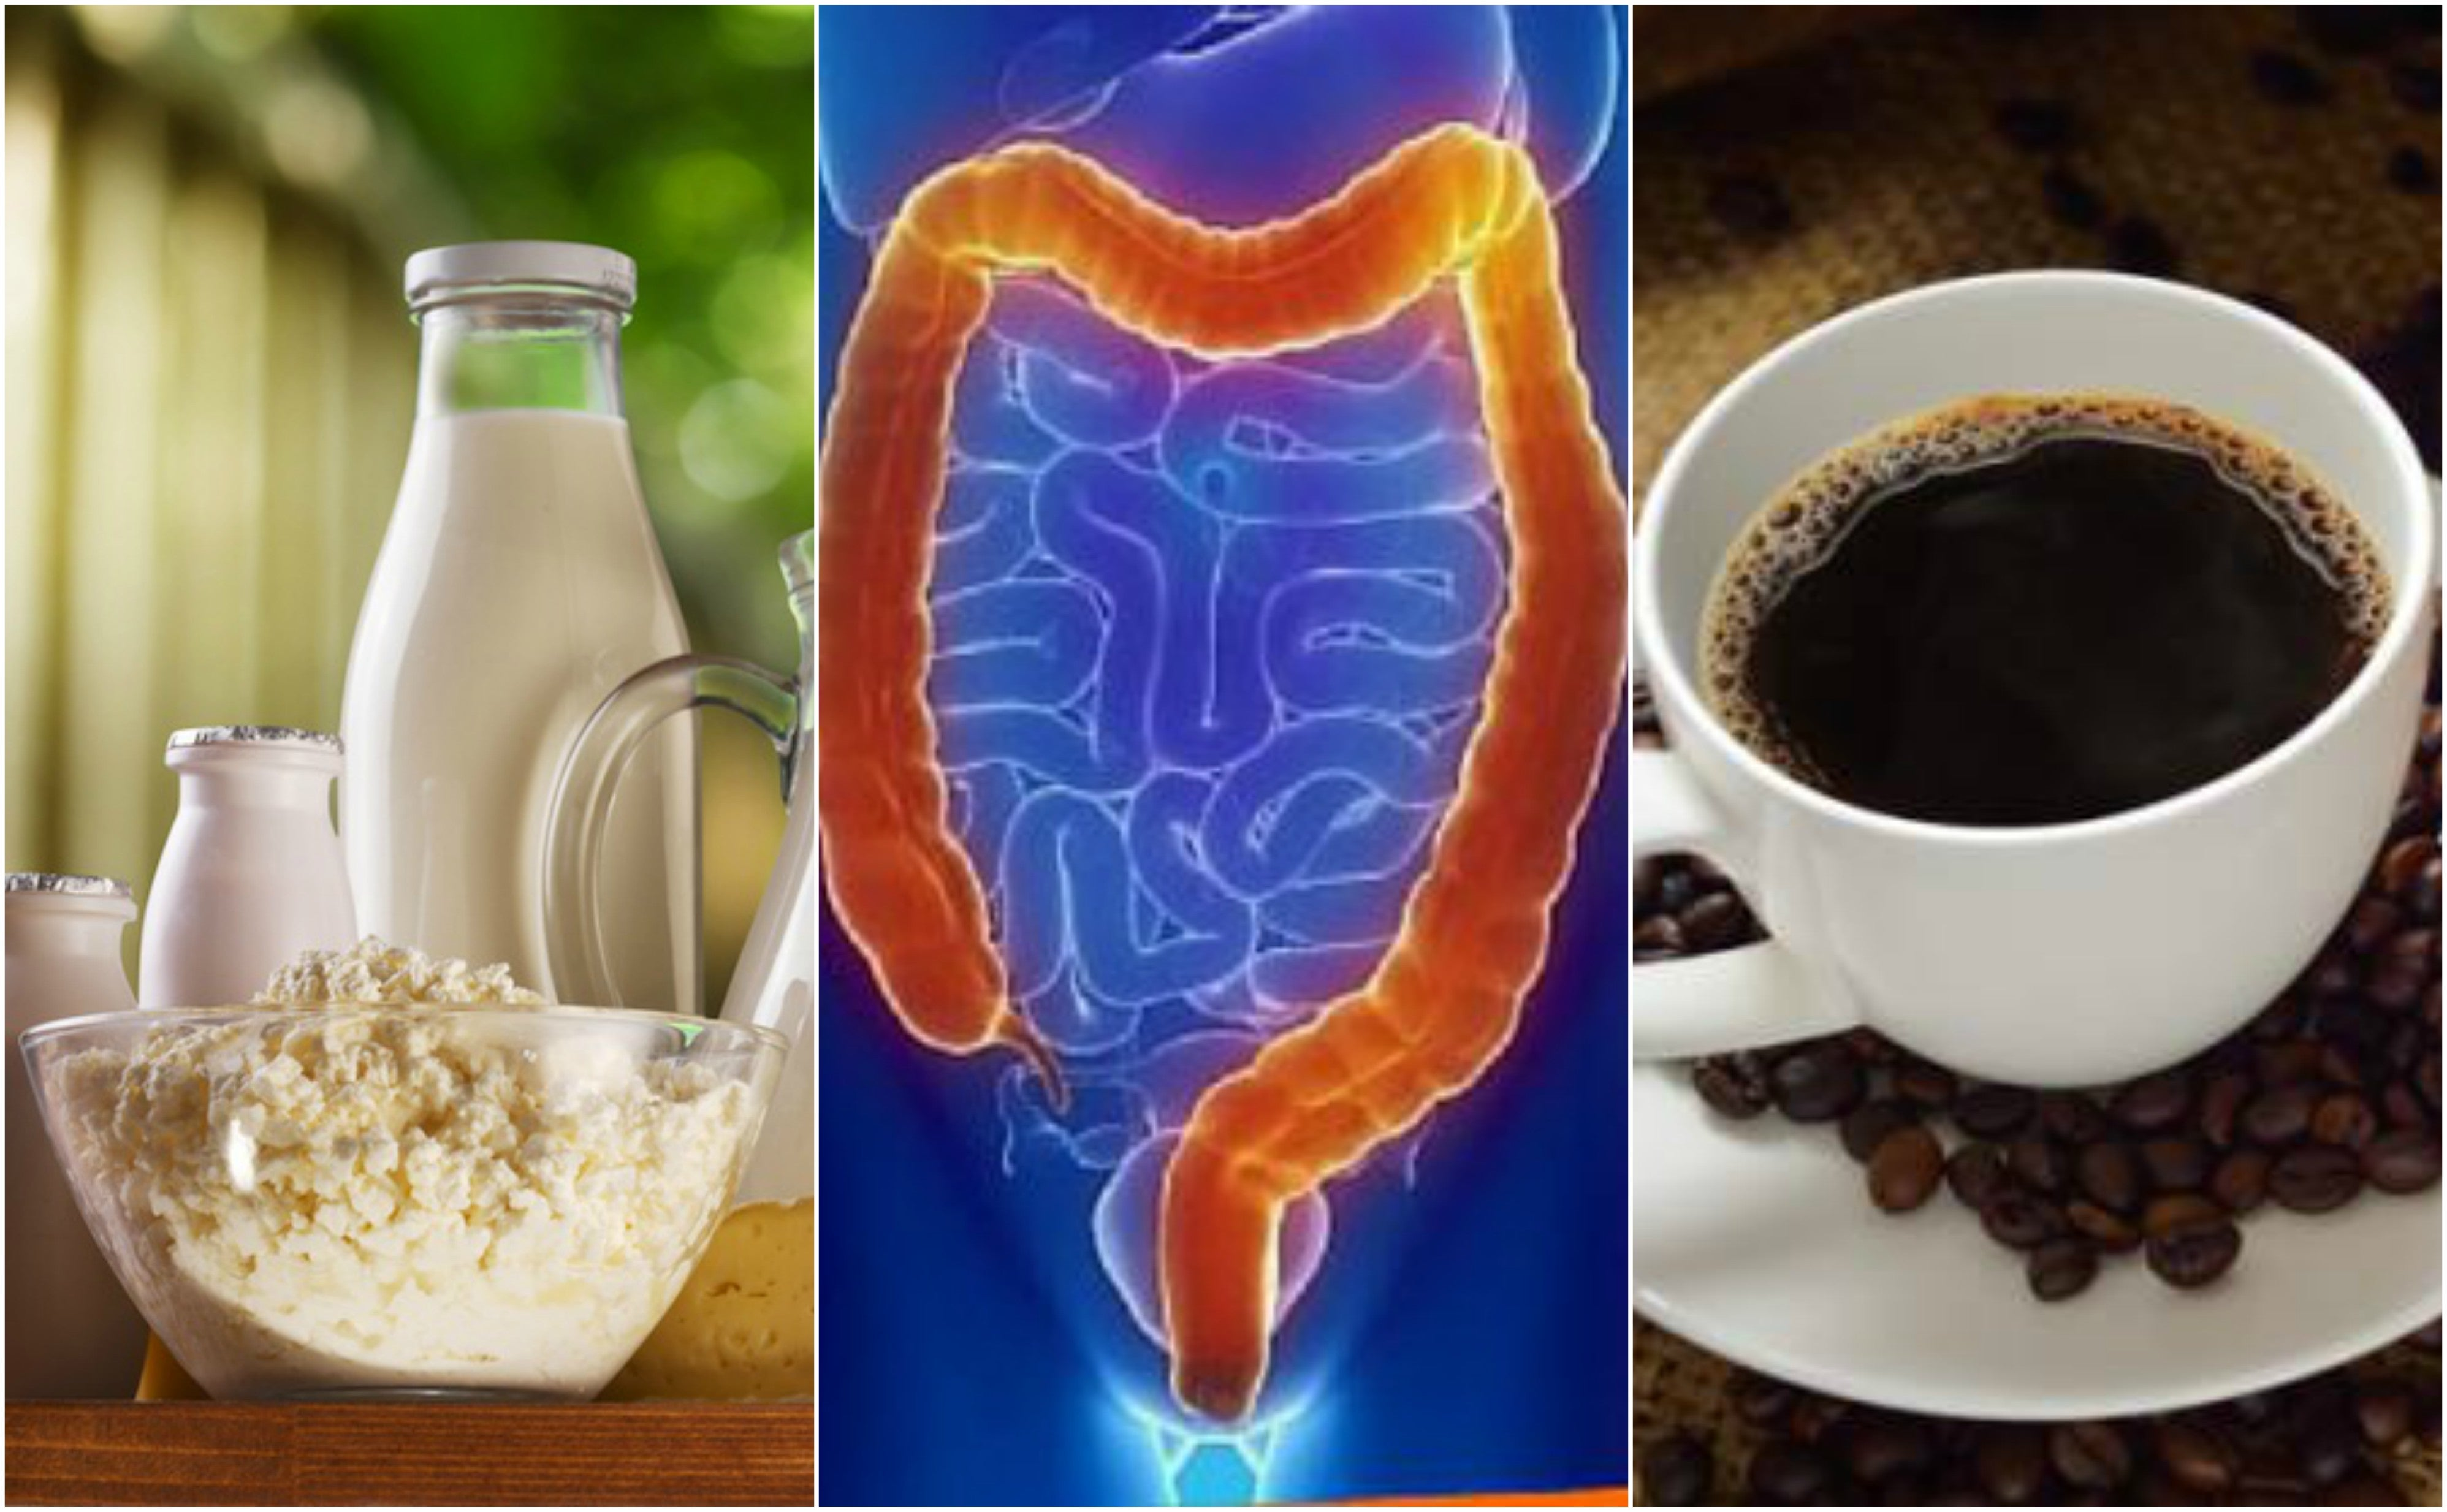 8 alimentos que todo paciente con colitis debe evitar